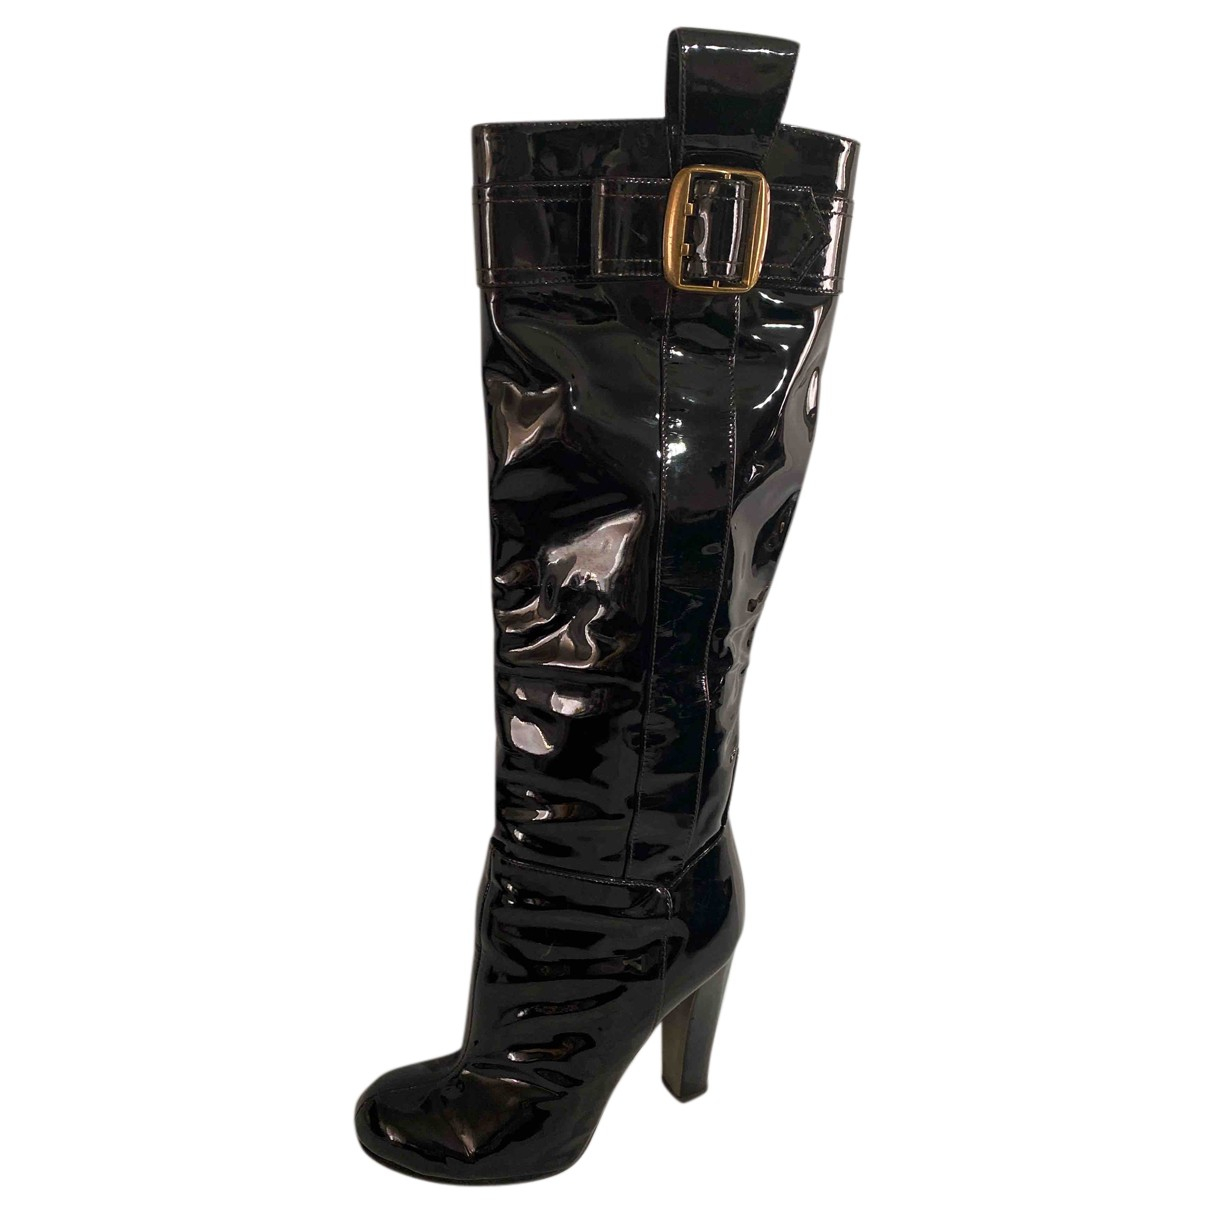 D&g N Black Patent leather Boots for Women 36 EU